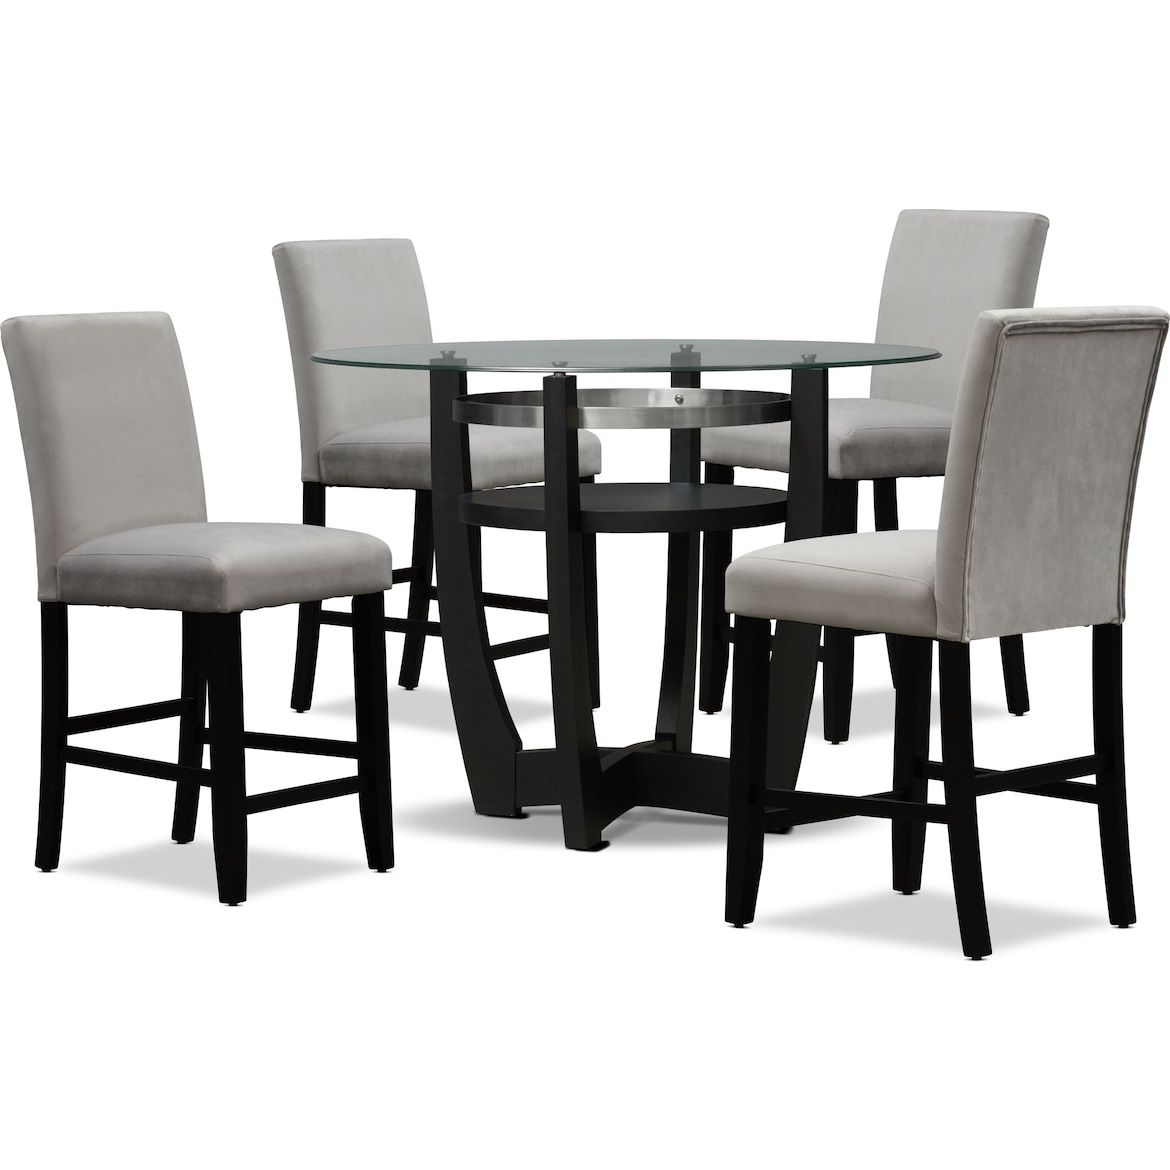 Lennox Counter Height Dining Table And 4 Stools Value City Furniture And Mattresses Counter Height Dining Table Dinning Room Decor Dining Room Sets Cheap counter height dining sets